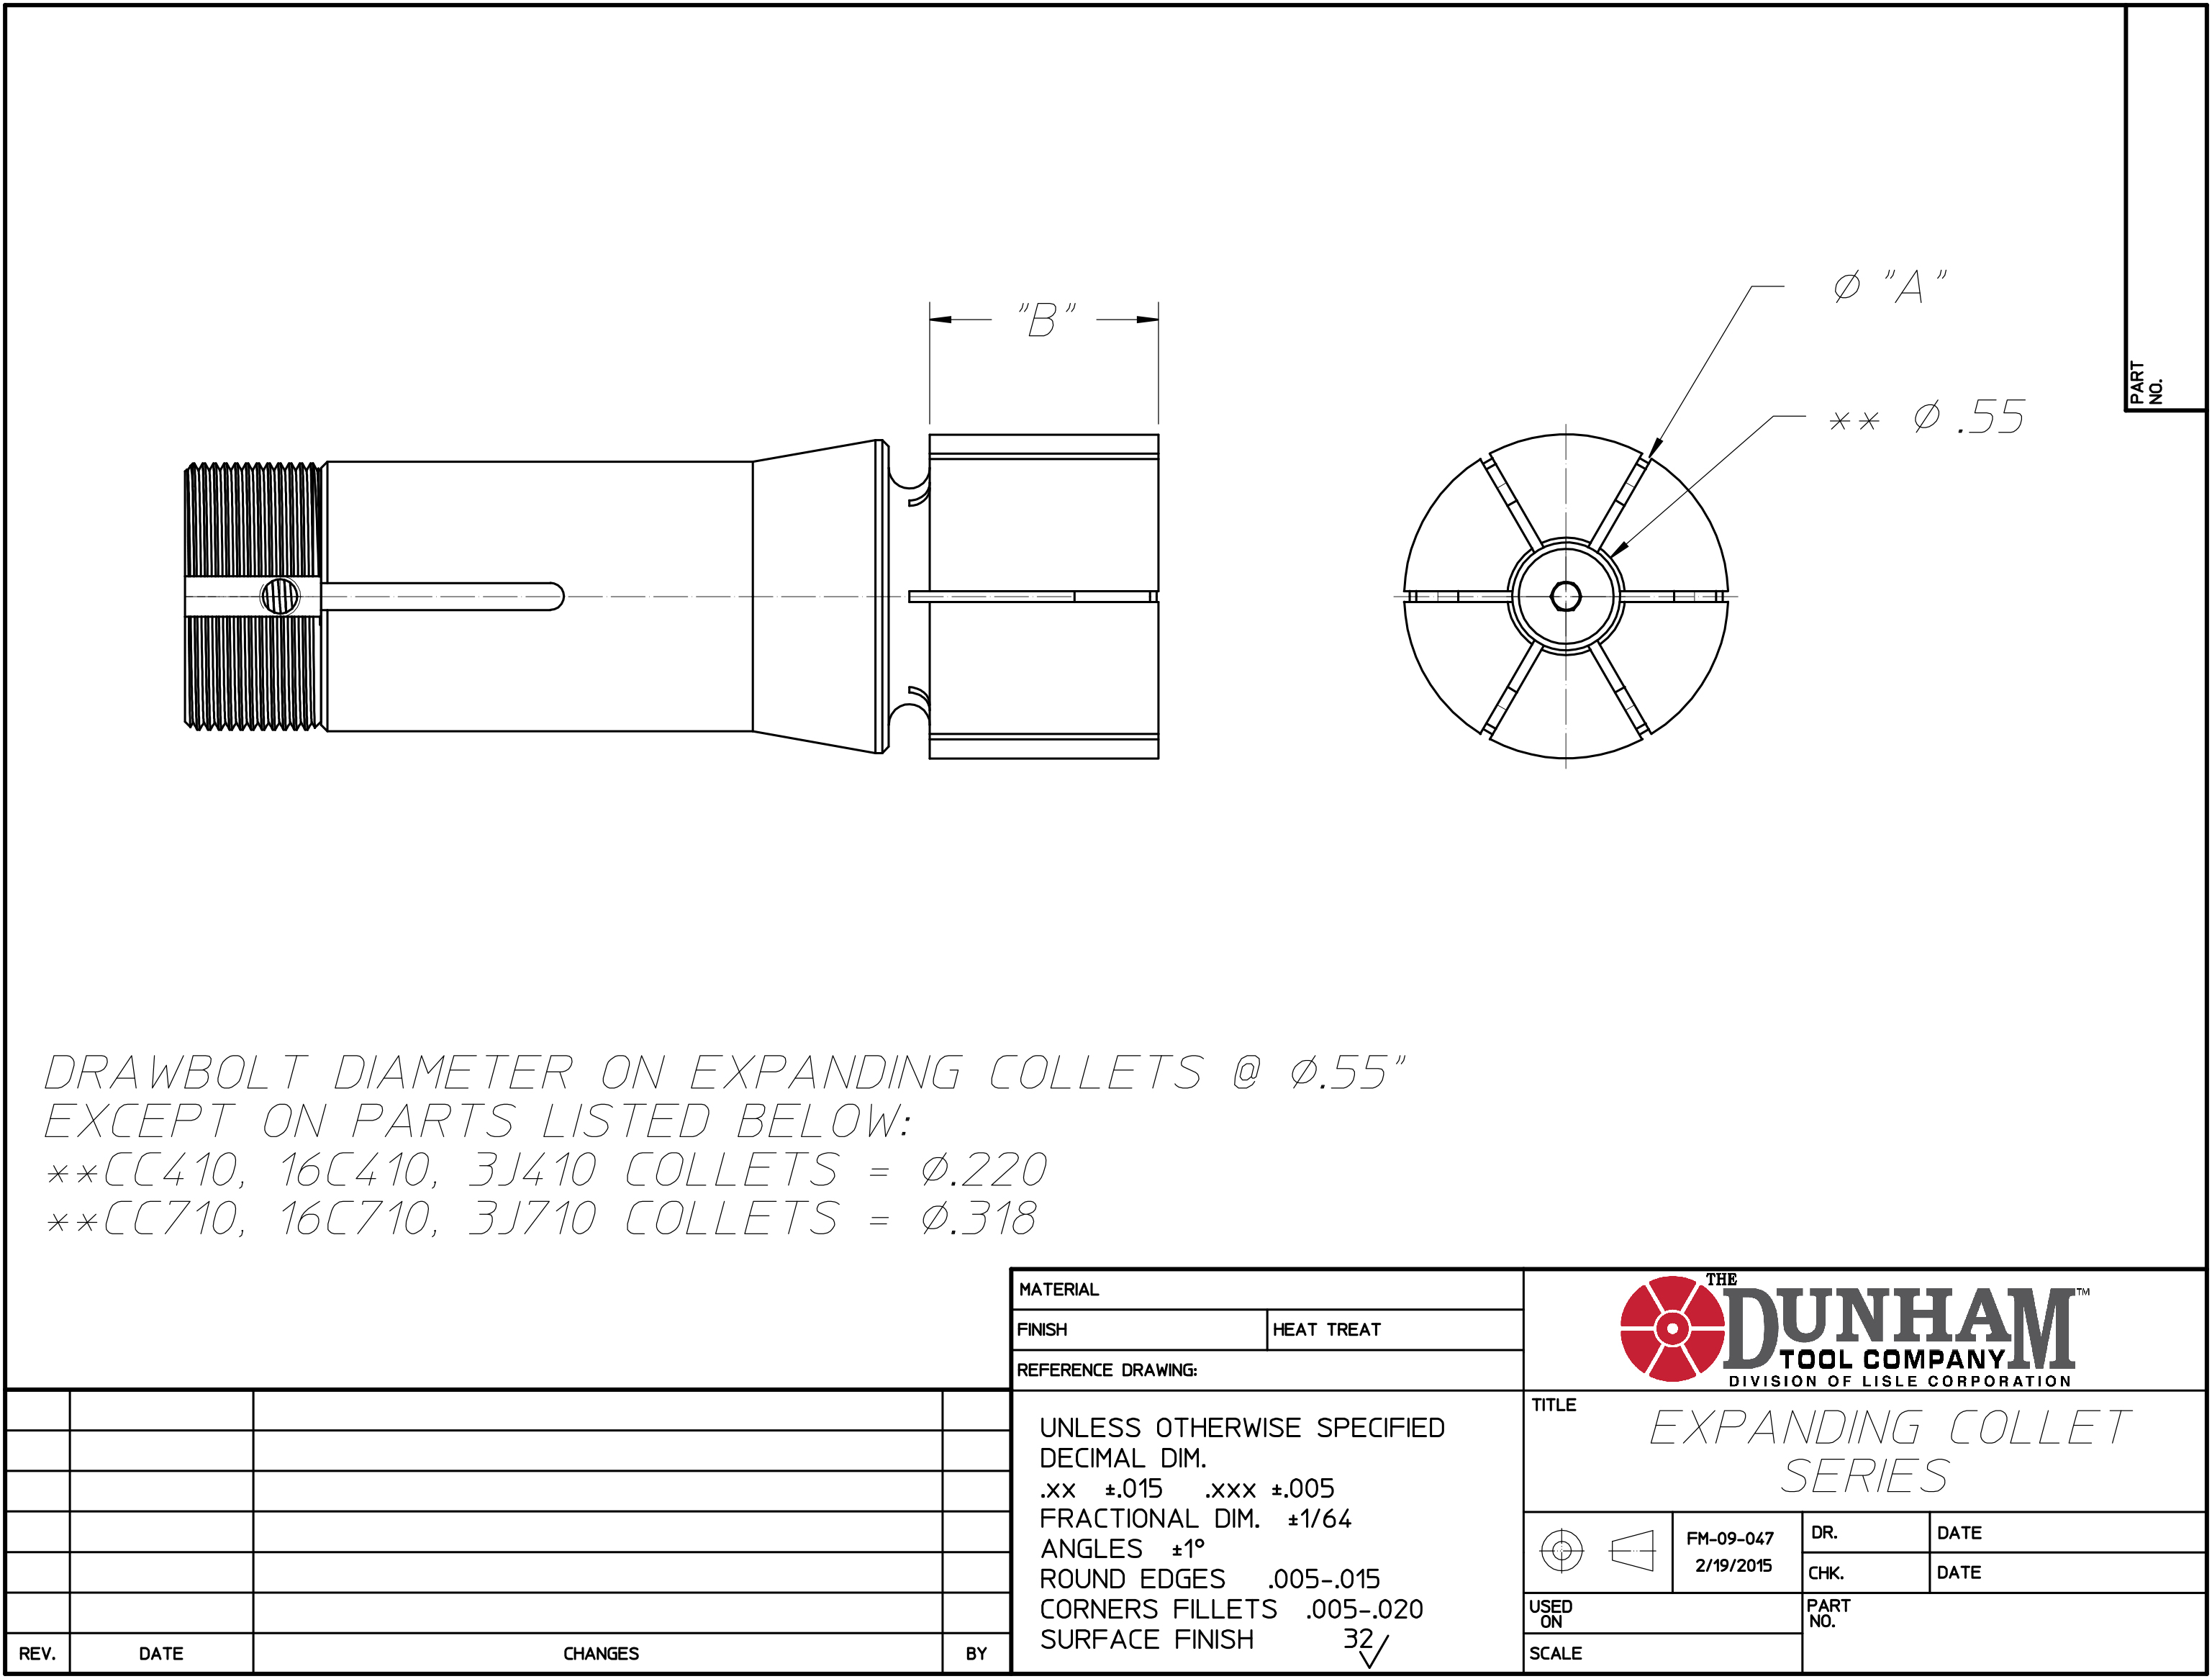 Construction Diagram for 5C Expanding Collet